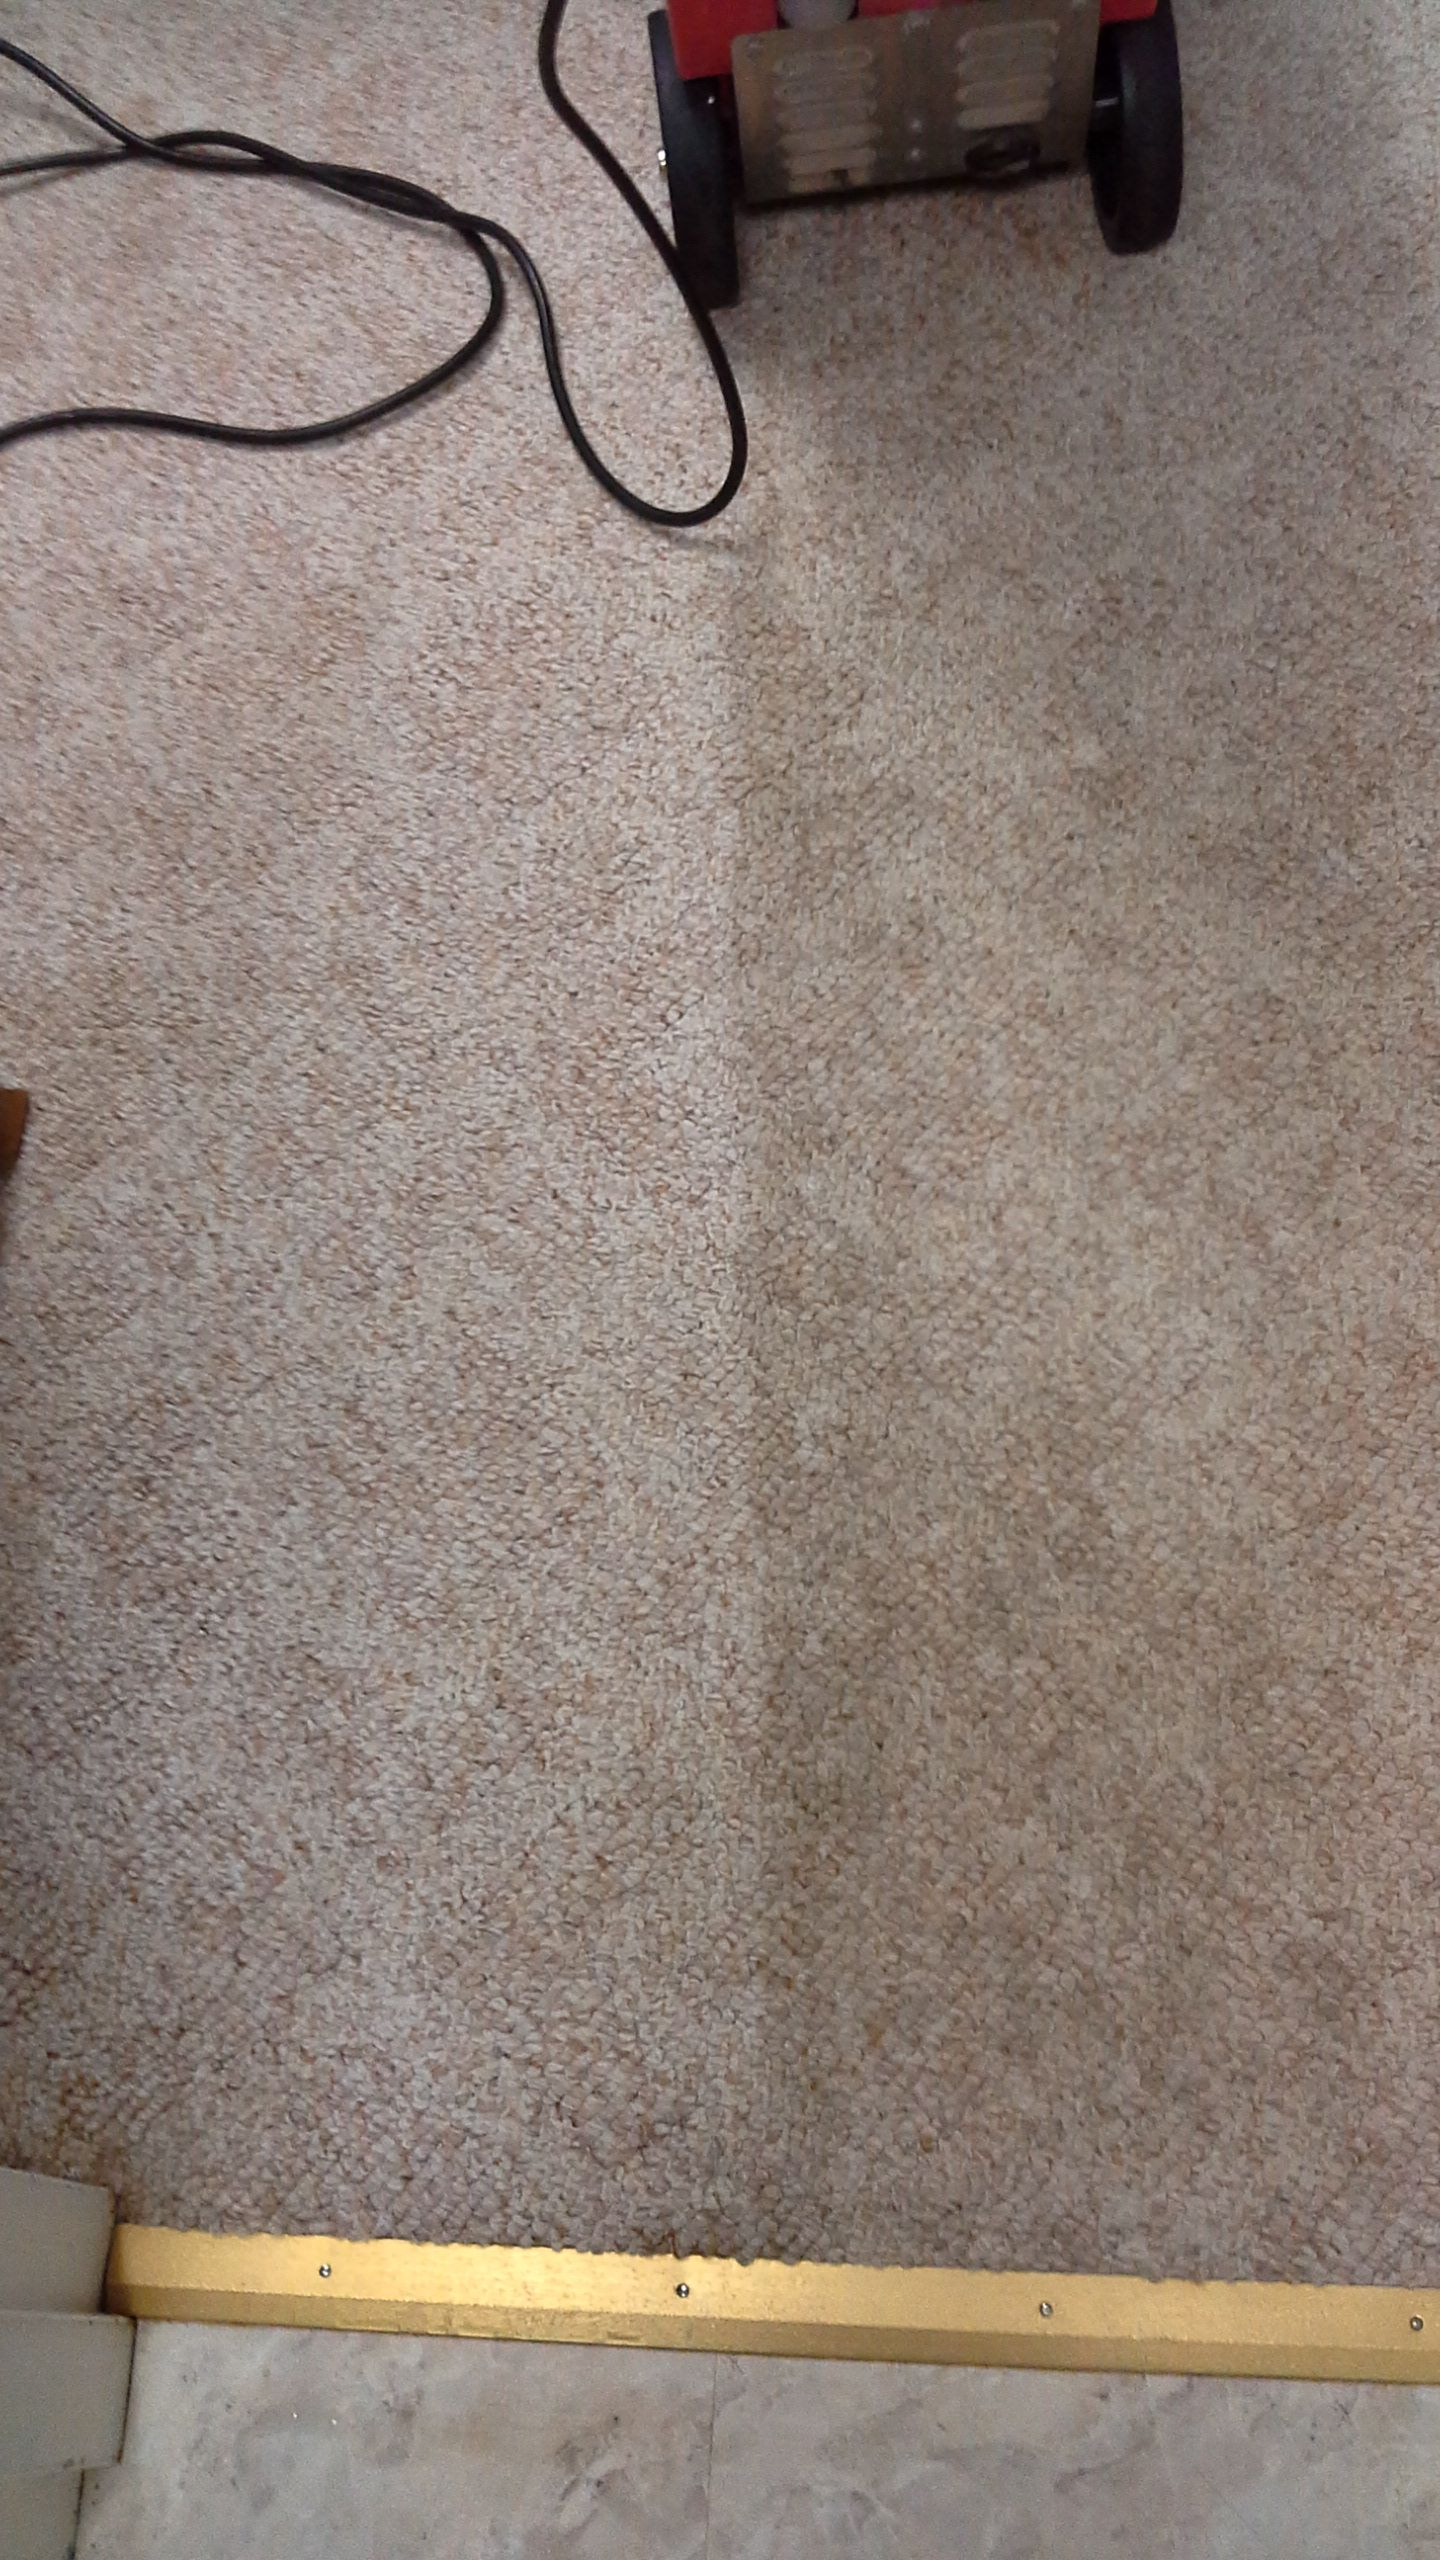 How Well My Carpet Came Clean